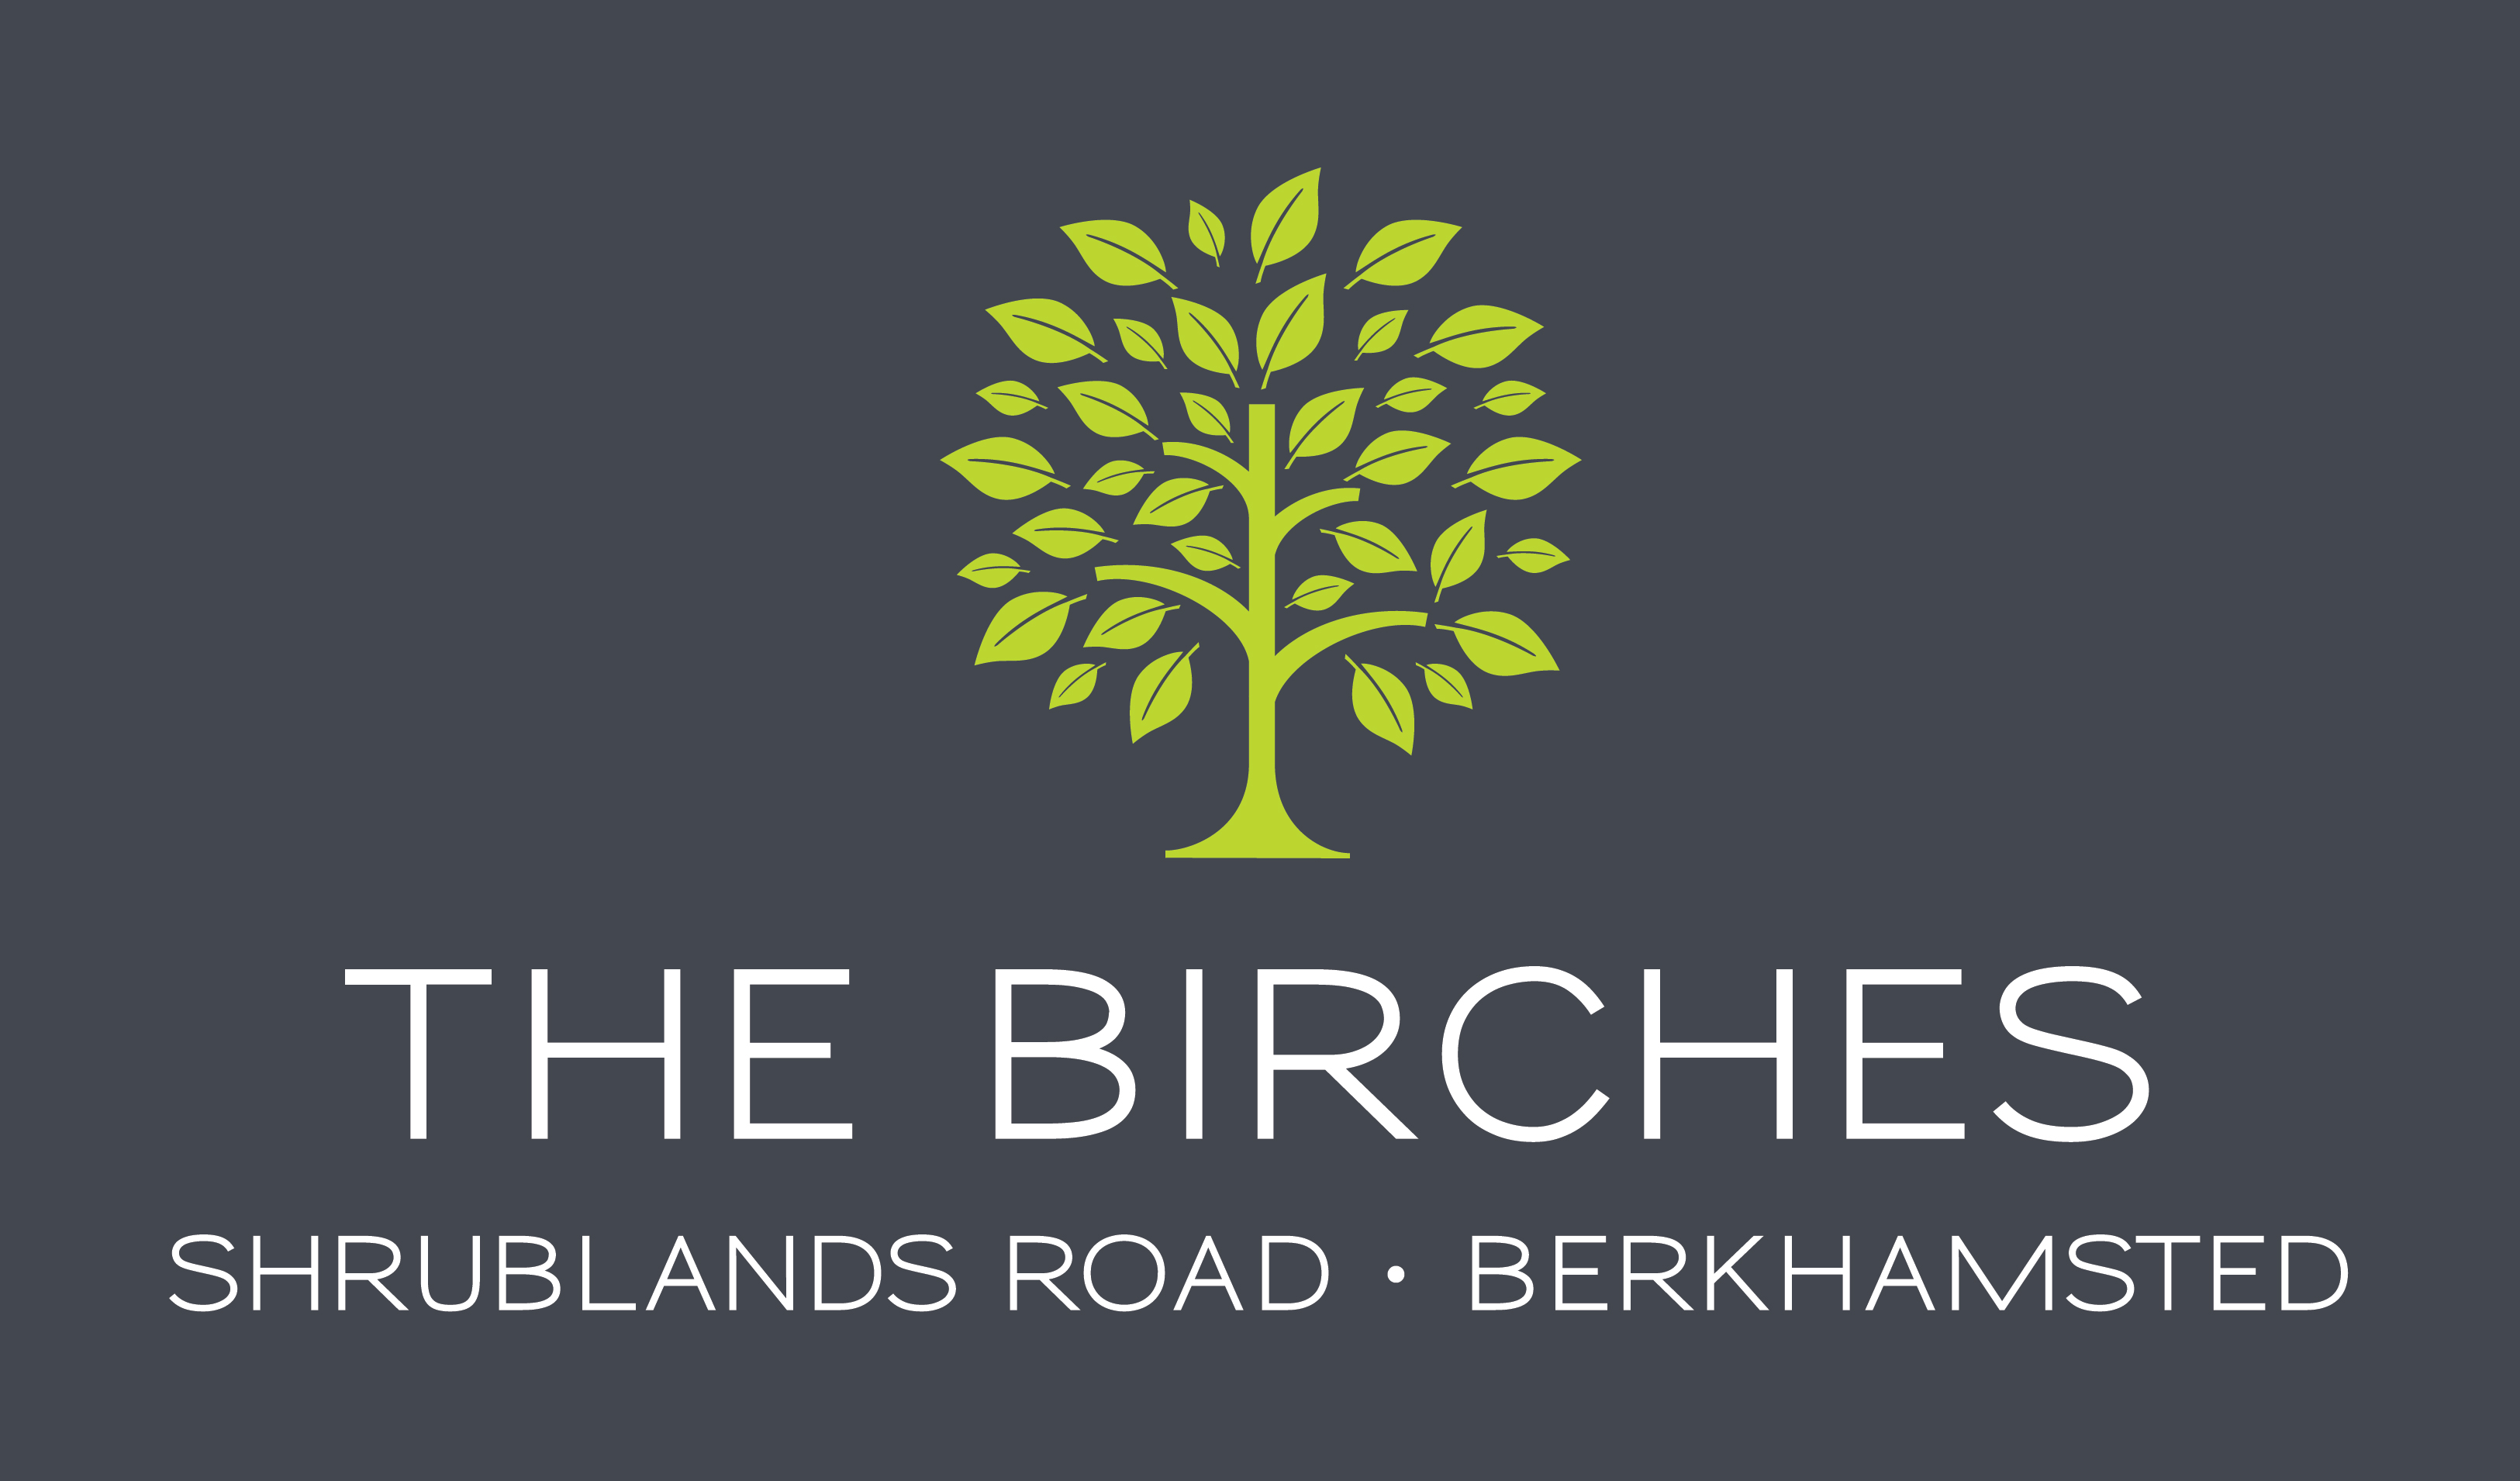 the_birches_logo_reversed_grey_bkgd